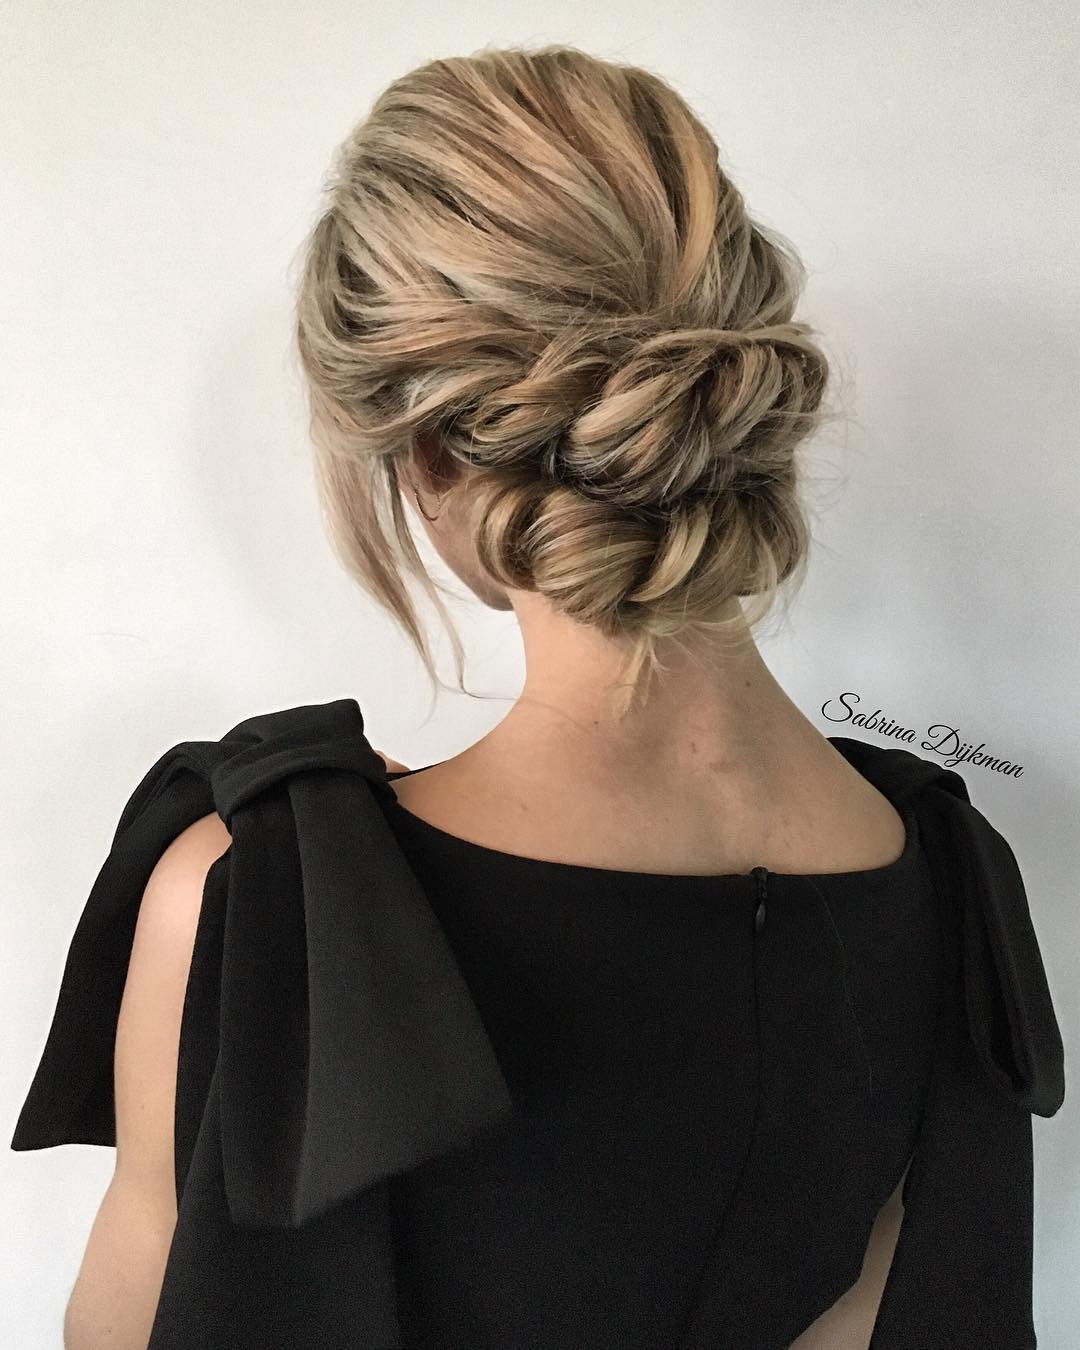 Updo Hairstyles For Wedding Guests: 30 Beautiful Wedding Updos 2020